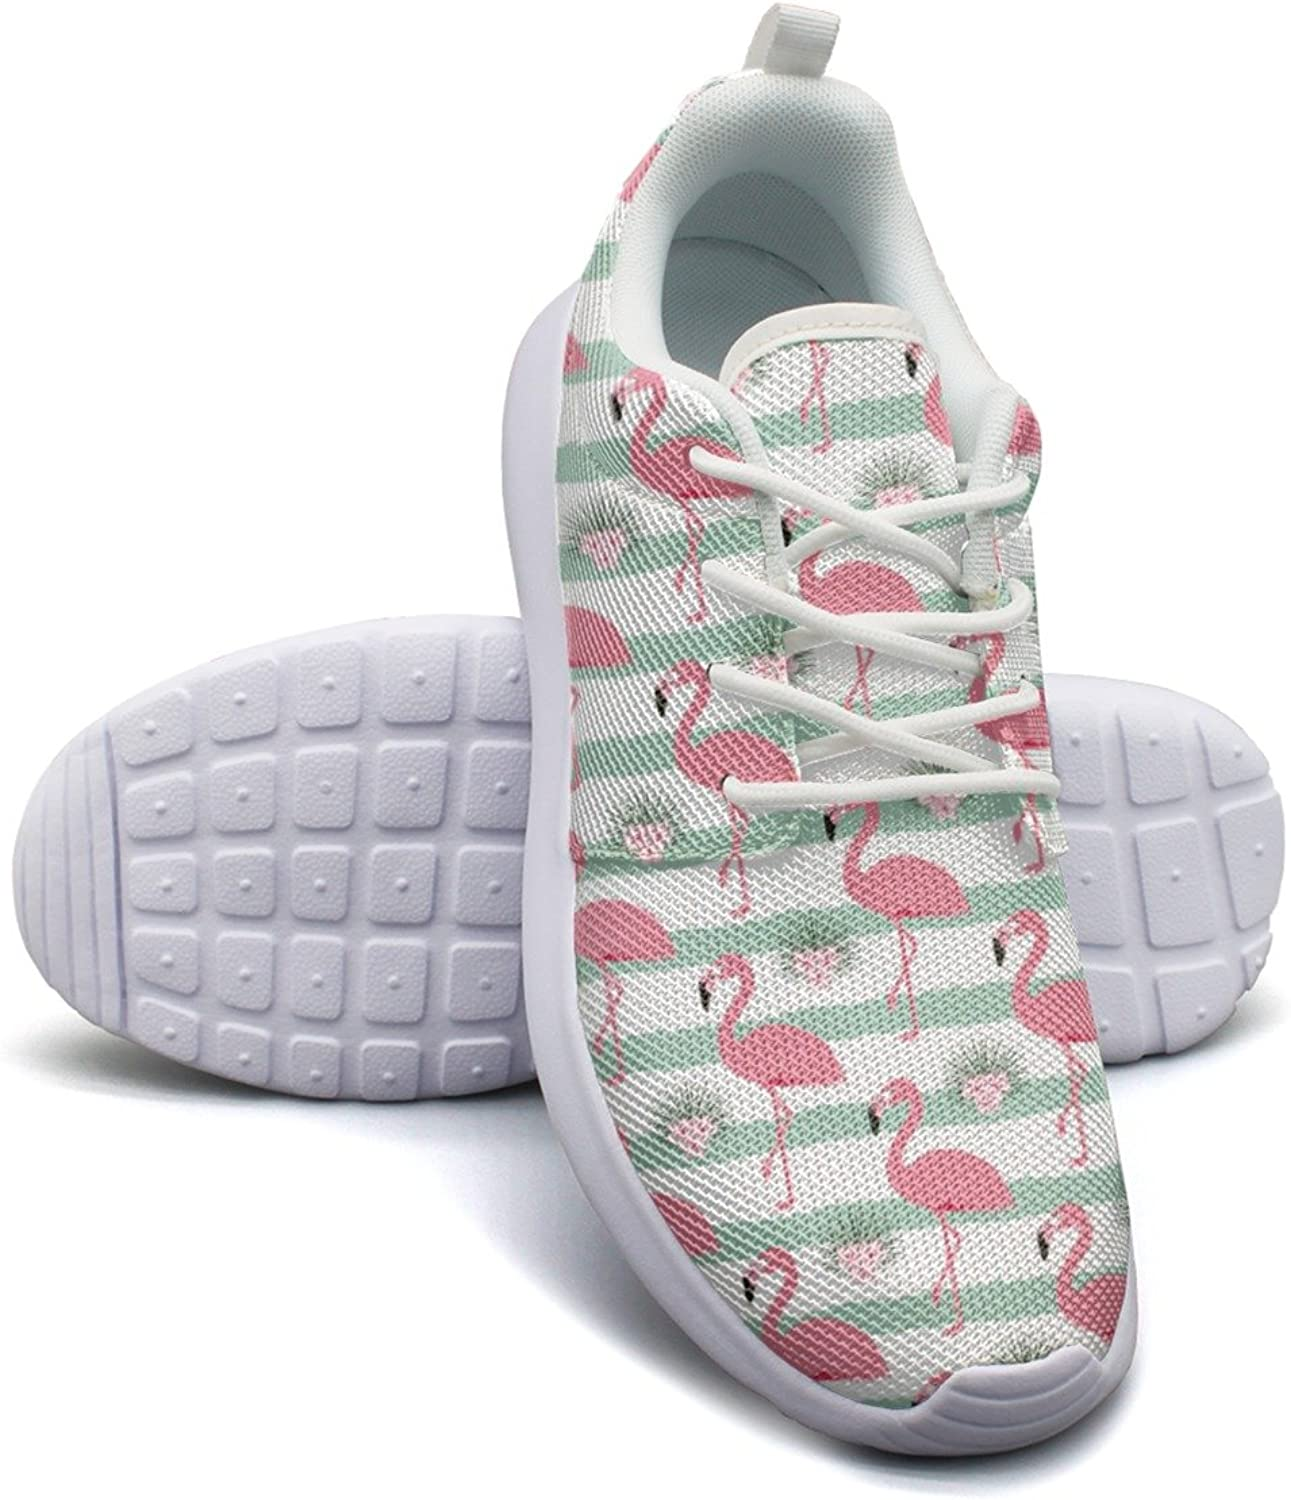 Stripes and flamingos mesh lightweight shoes for women comfortable sports basketball Sneakers shoes